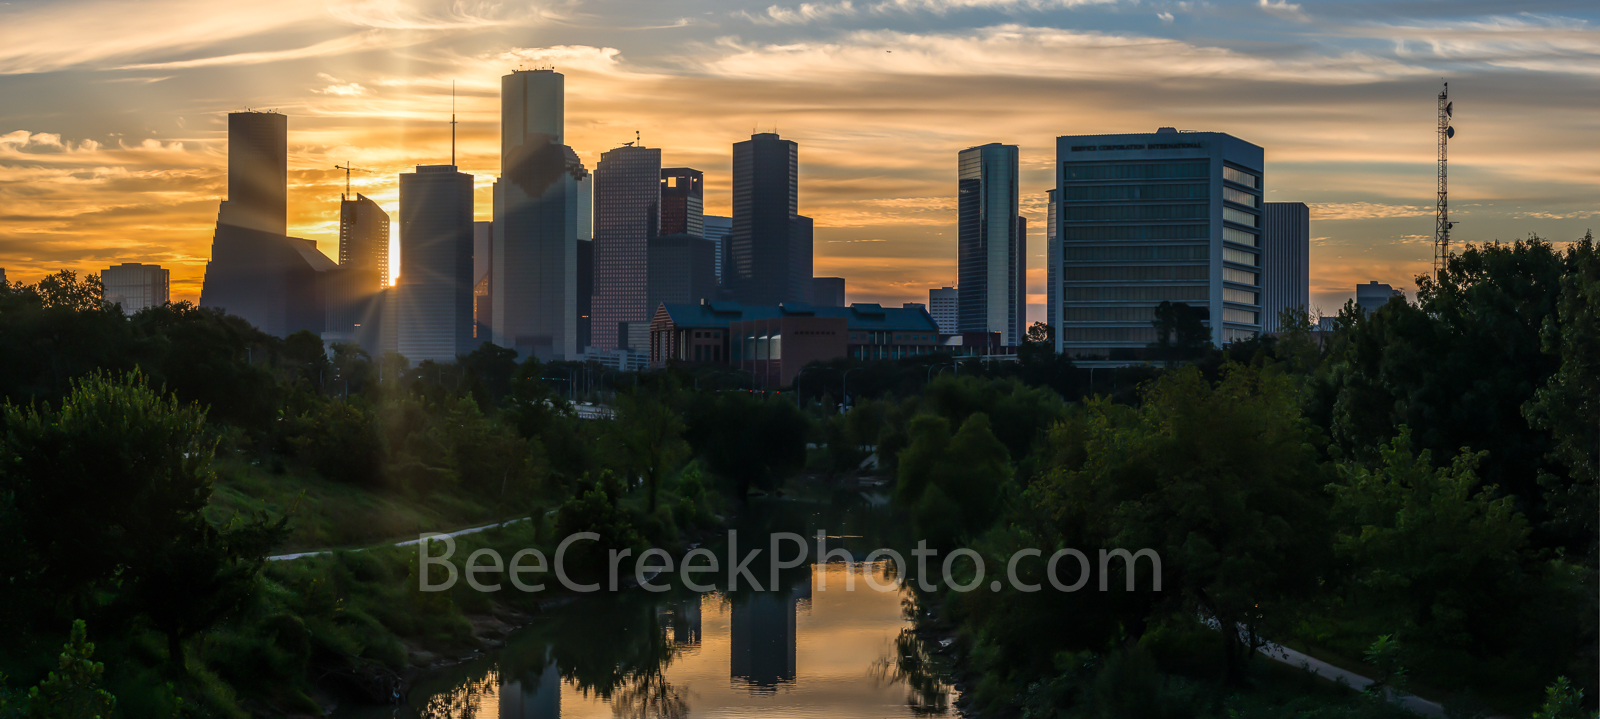 Houston skyline, sunrise, Buffalo Bayou,  golden, glow, pano, panorama, cityscape, city, downtown, sun rays, high rise buildings, parks, morning,  gulf of mexico,, photo